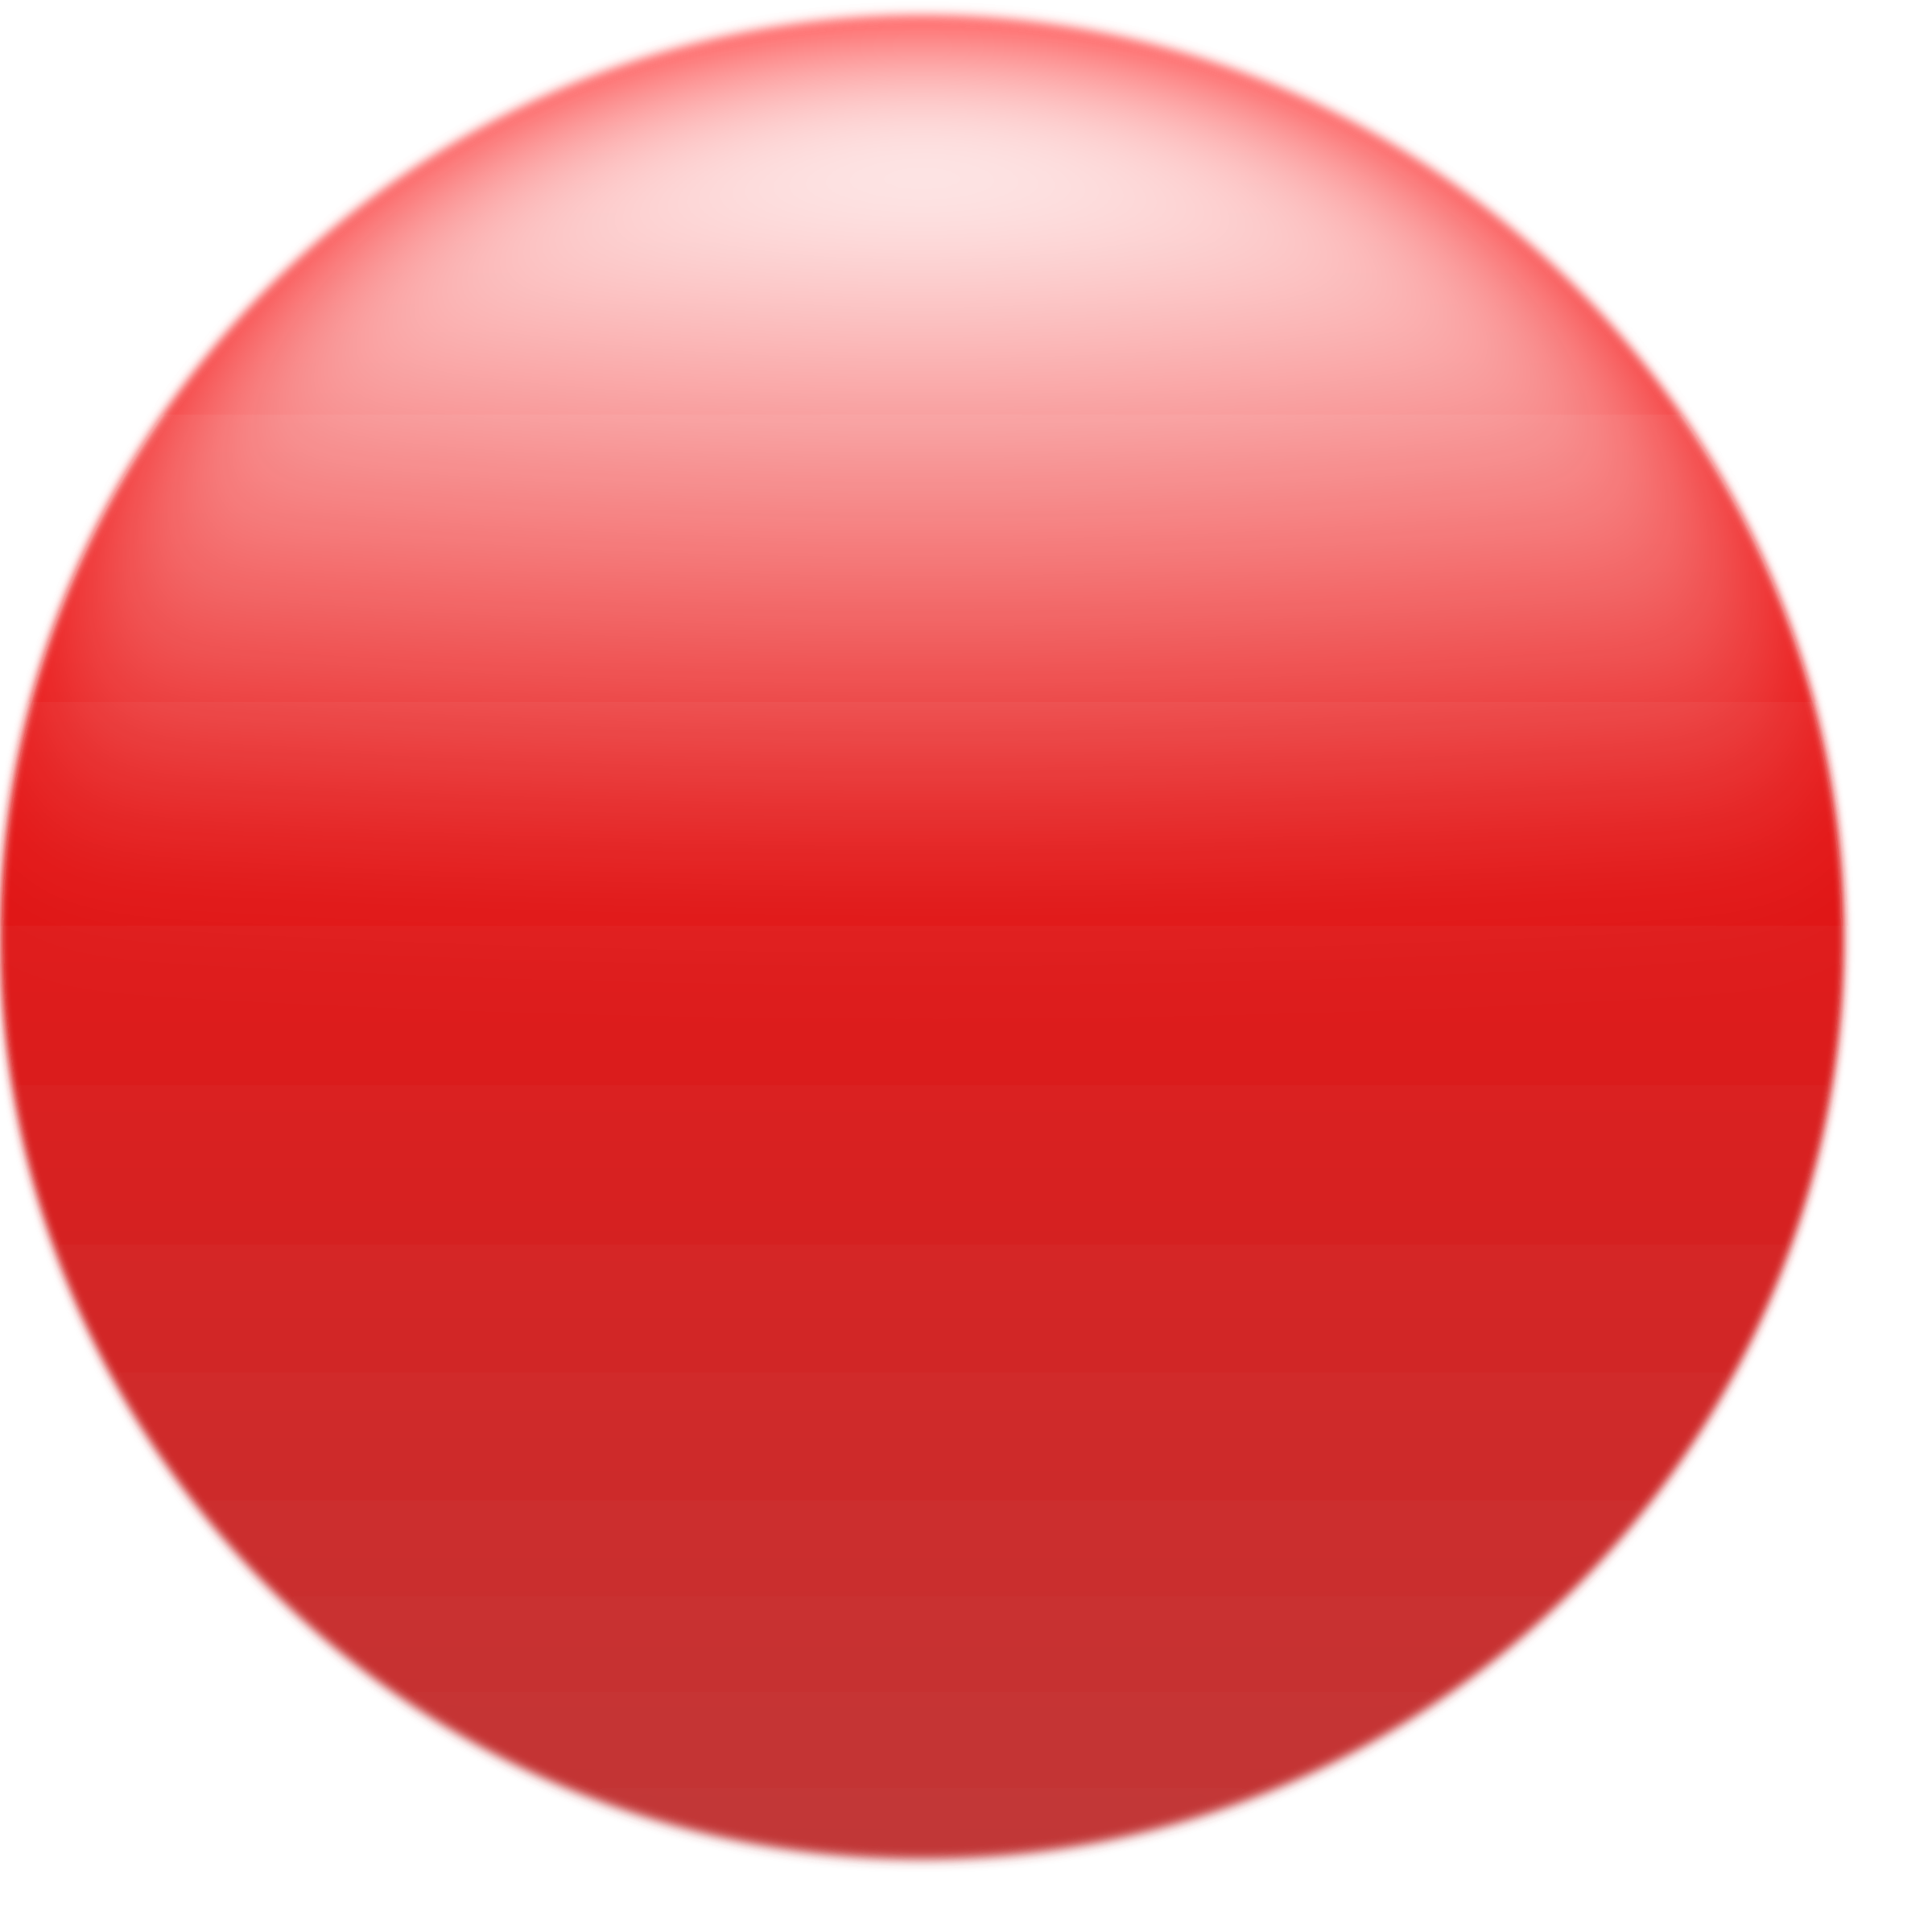 Button clipart img. Simple glossy circle red